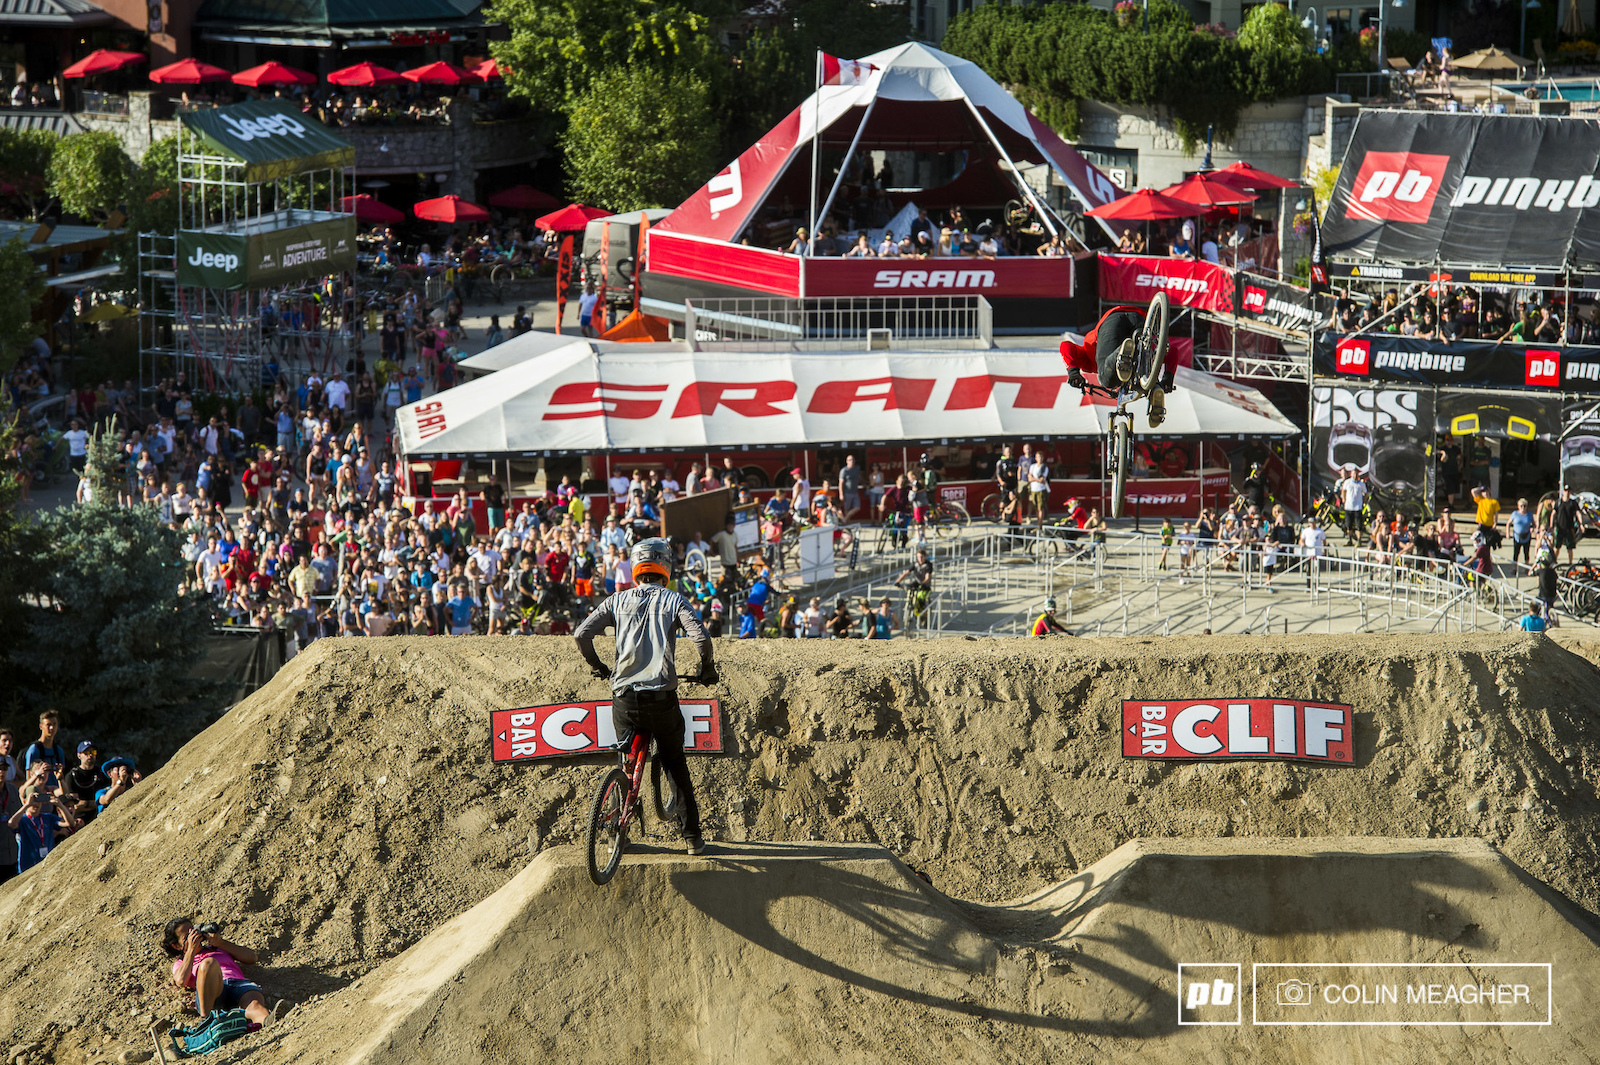 Branden Howey slipped in the same dust that took out Storch. On the lip of the second jump all Howey could do was watch the other Van Steenbergen front flip to victory for the round.